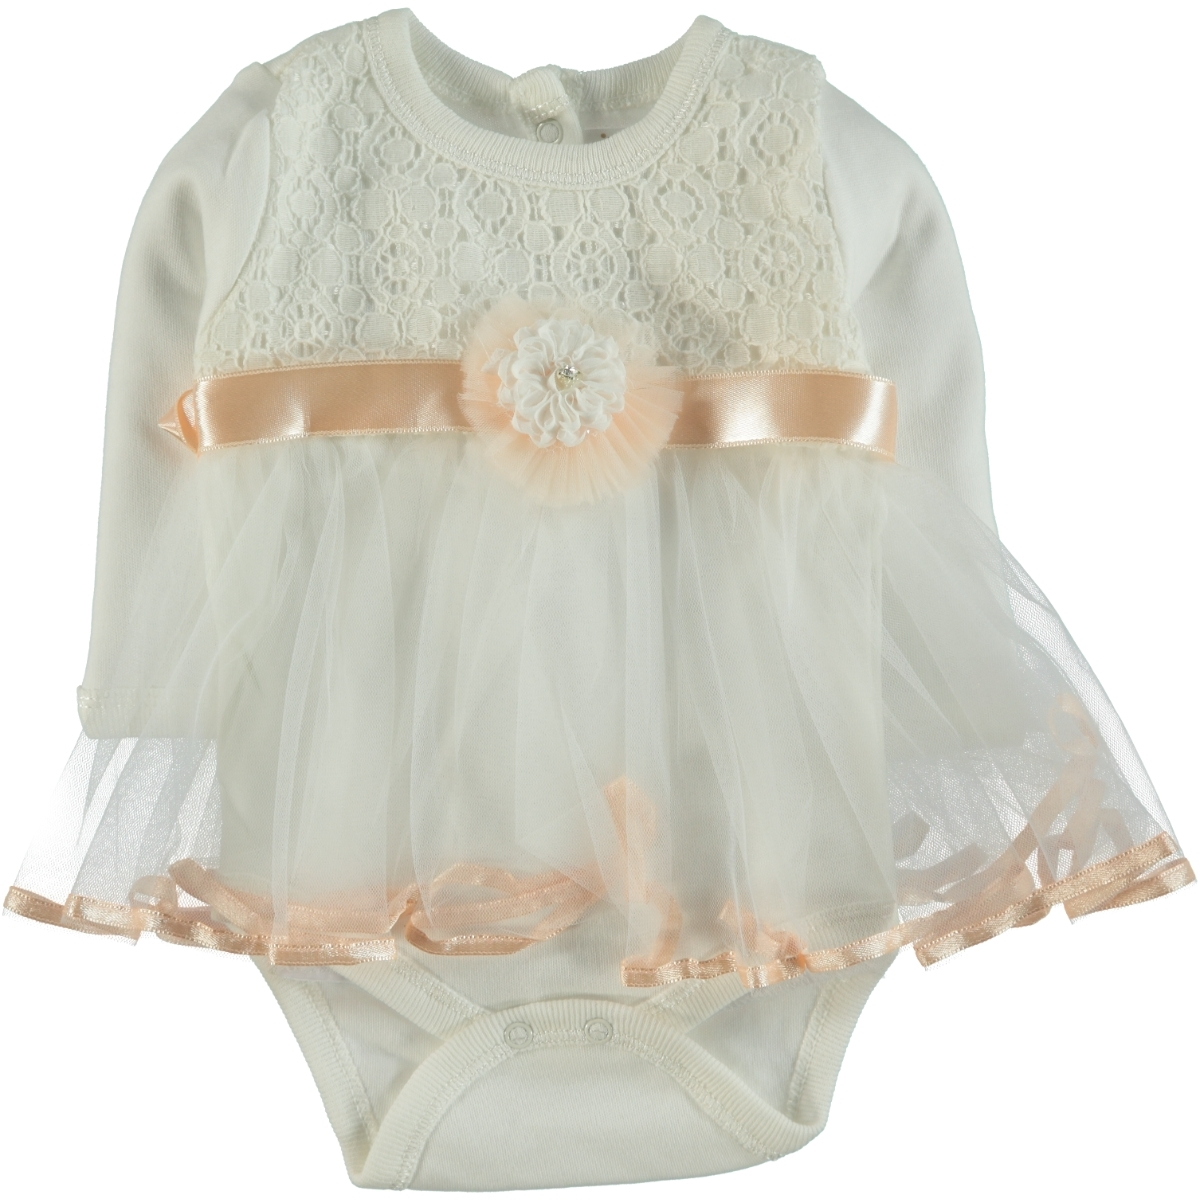 T.F.Taffy 0-6 Months Baby Girl Bodysuit With Snaps Taffy Salmon